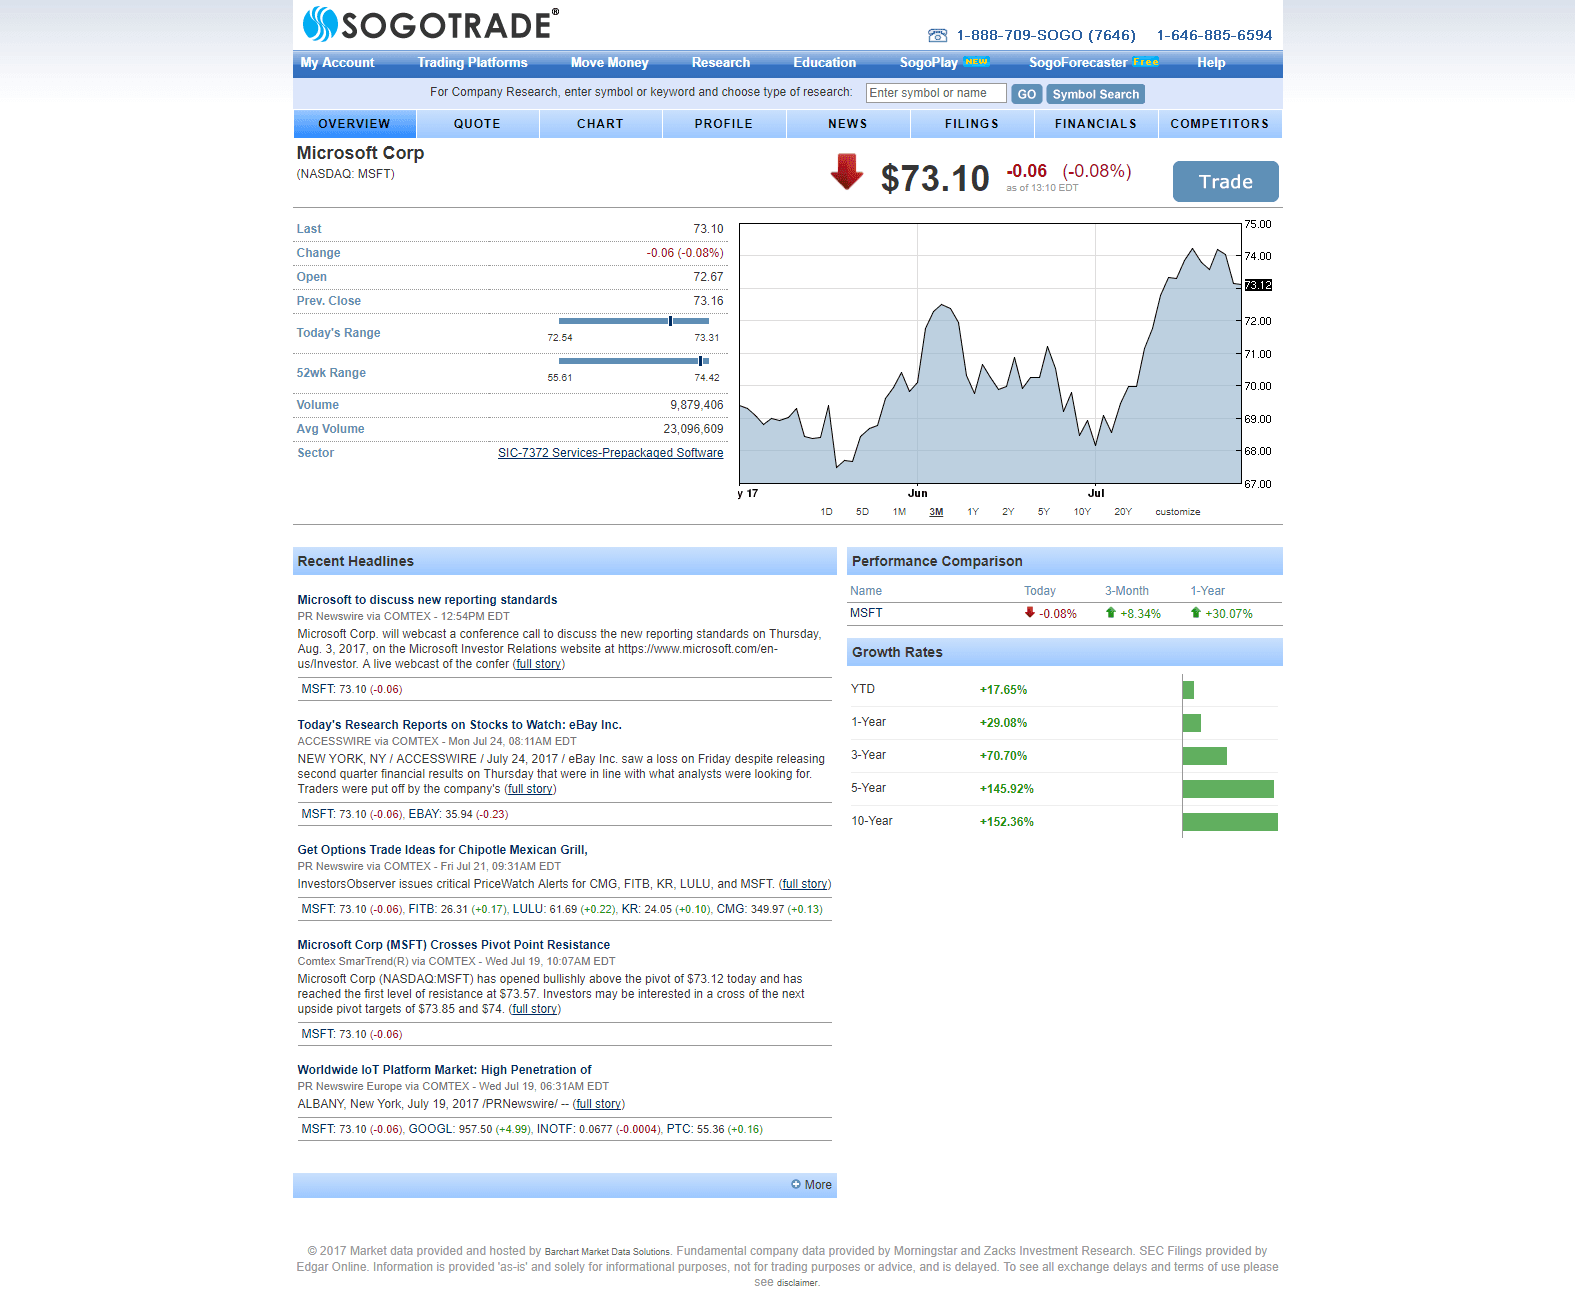 SogoTrade has incorporated a number of standard research functions into its platform. Find the Research link along the top menu bar to get started. The default page under the research section is Market Overview, which offers a summary of a stock's price, headlines, and performance. Enter a ticker into the search bar up top to load research for any company. Take note of the menu bar that appears under the primary menu options. Clicking on its items will load up company-specific quotes, charts, news, and research.